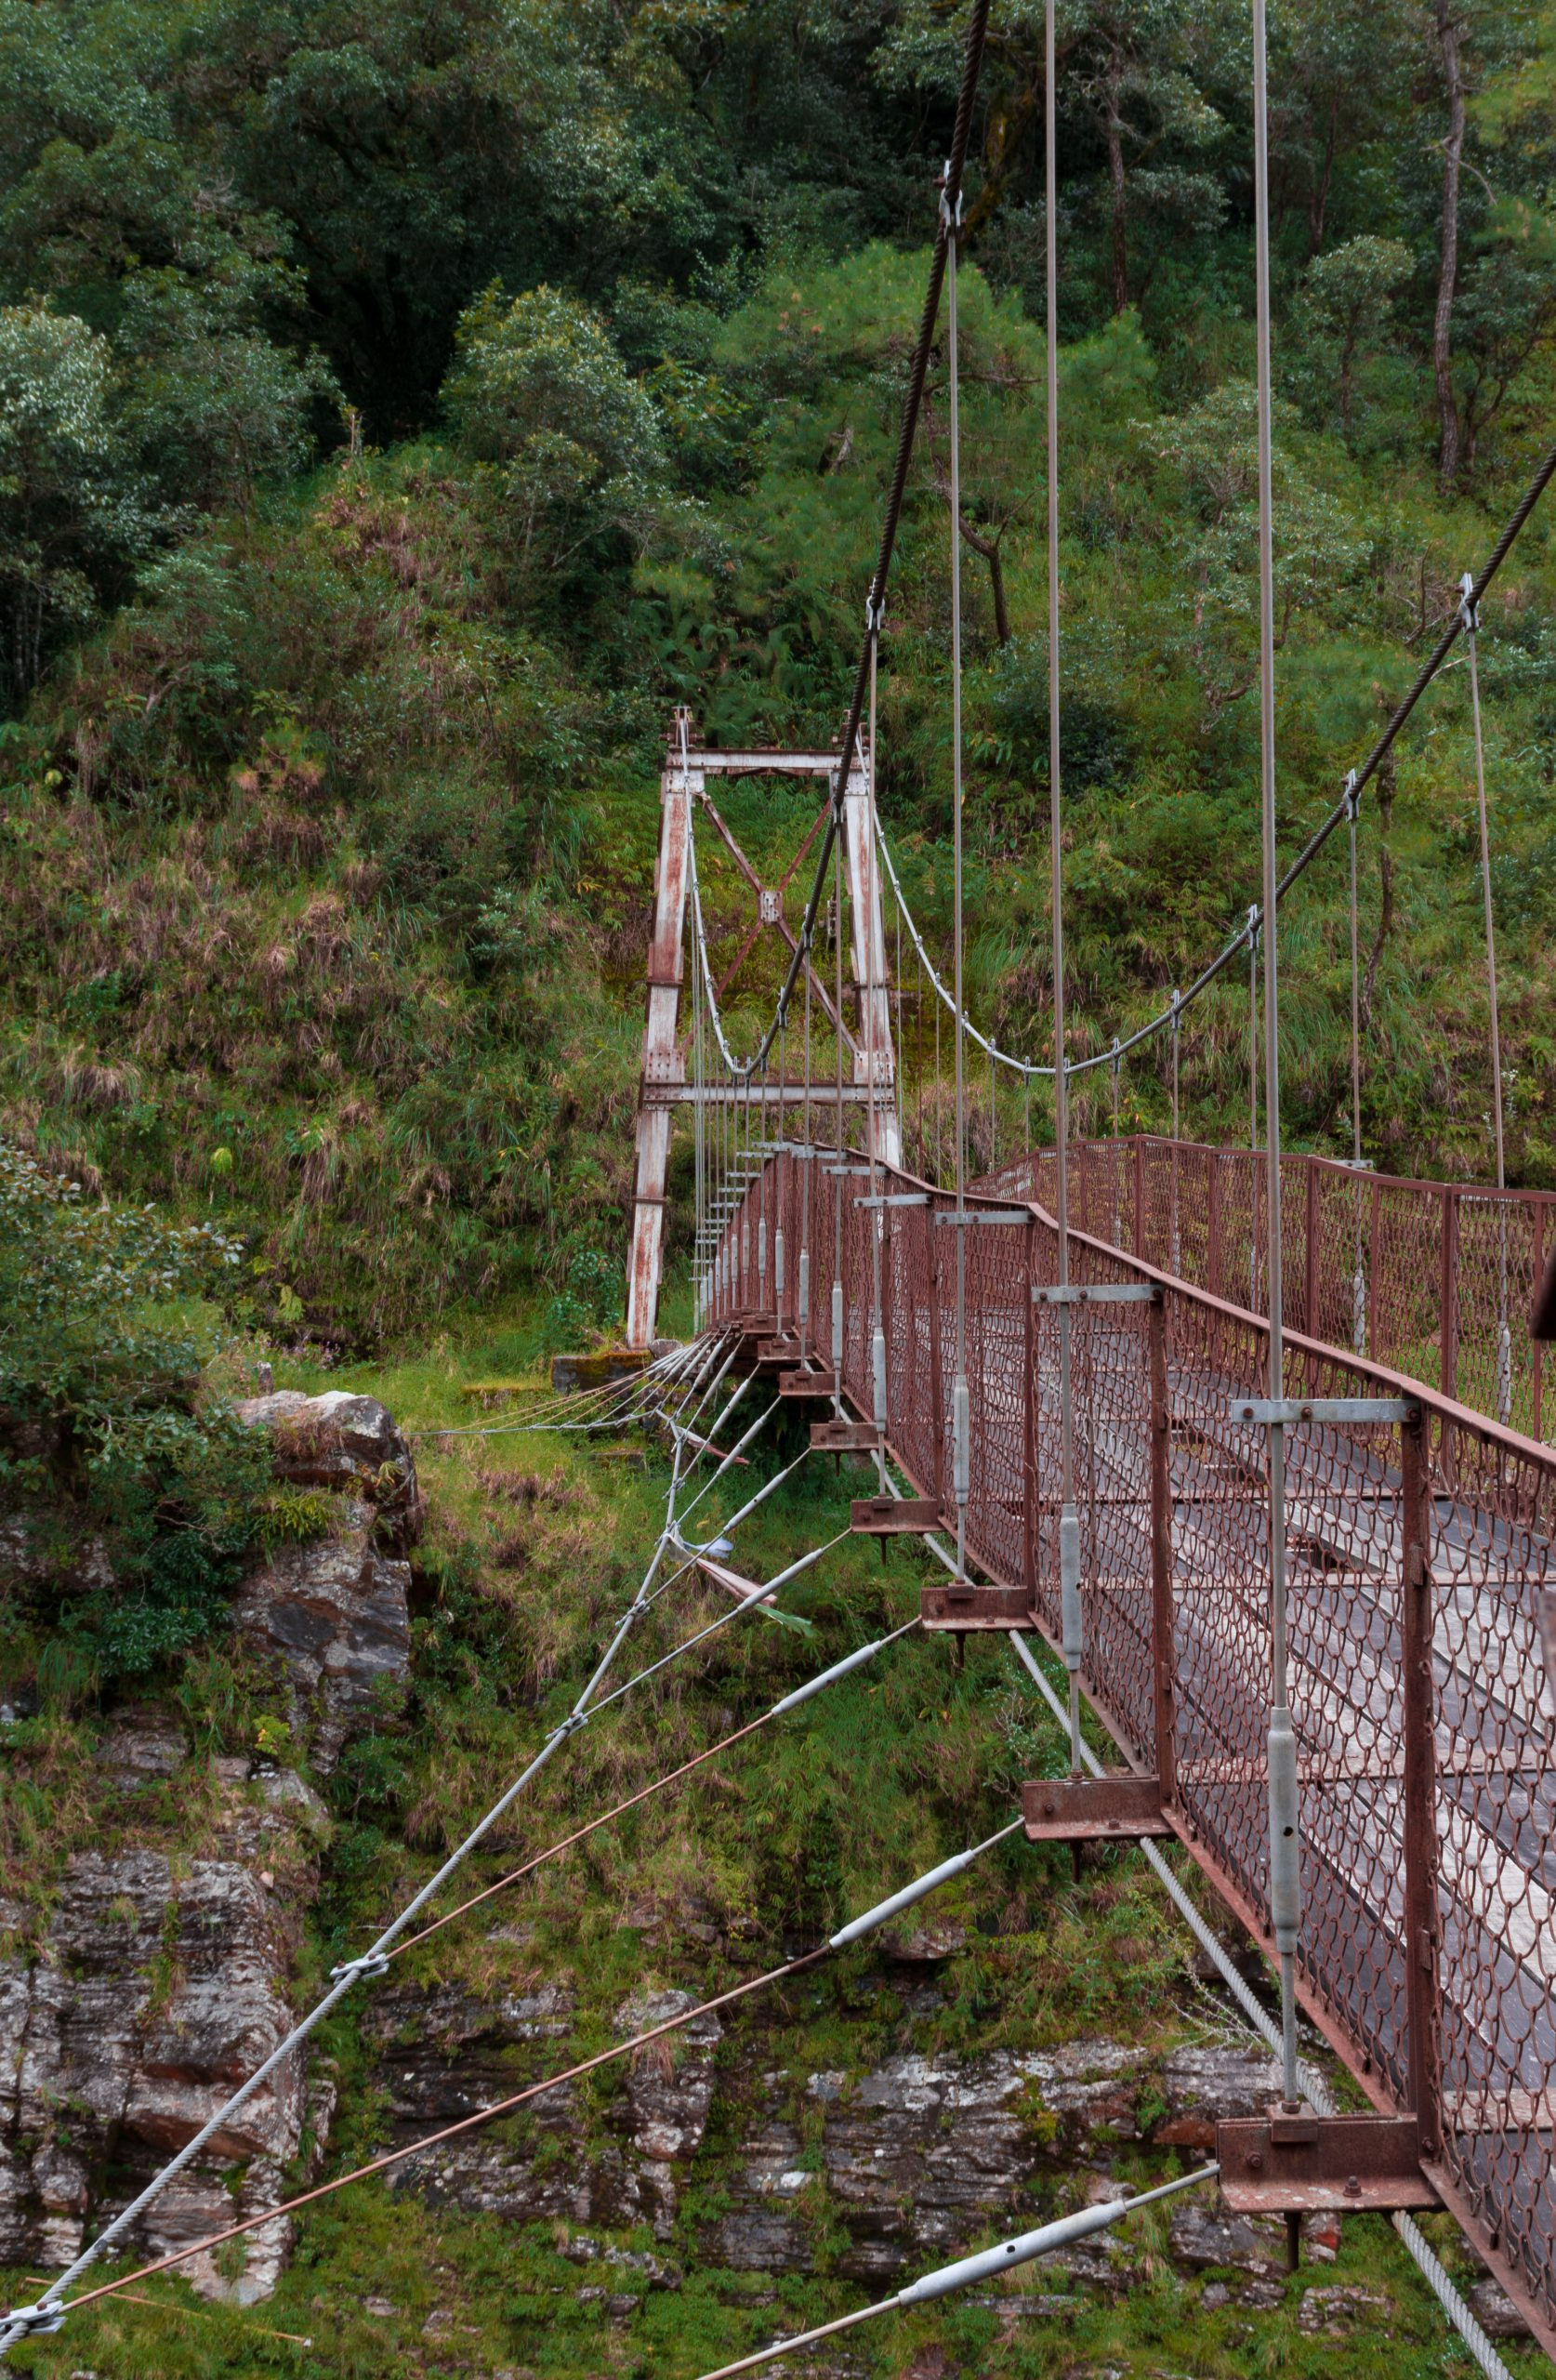 Bridge in hilly areas